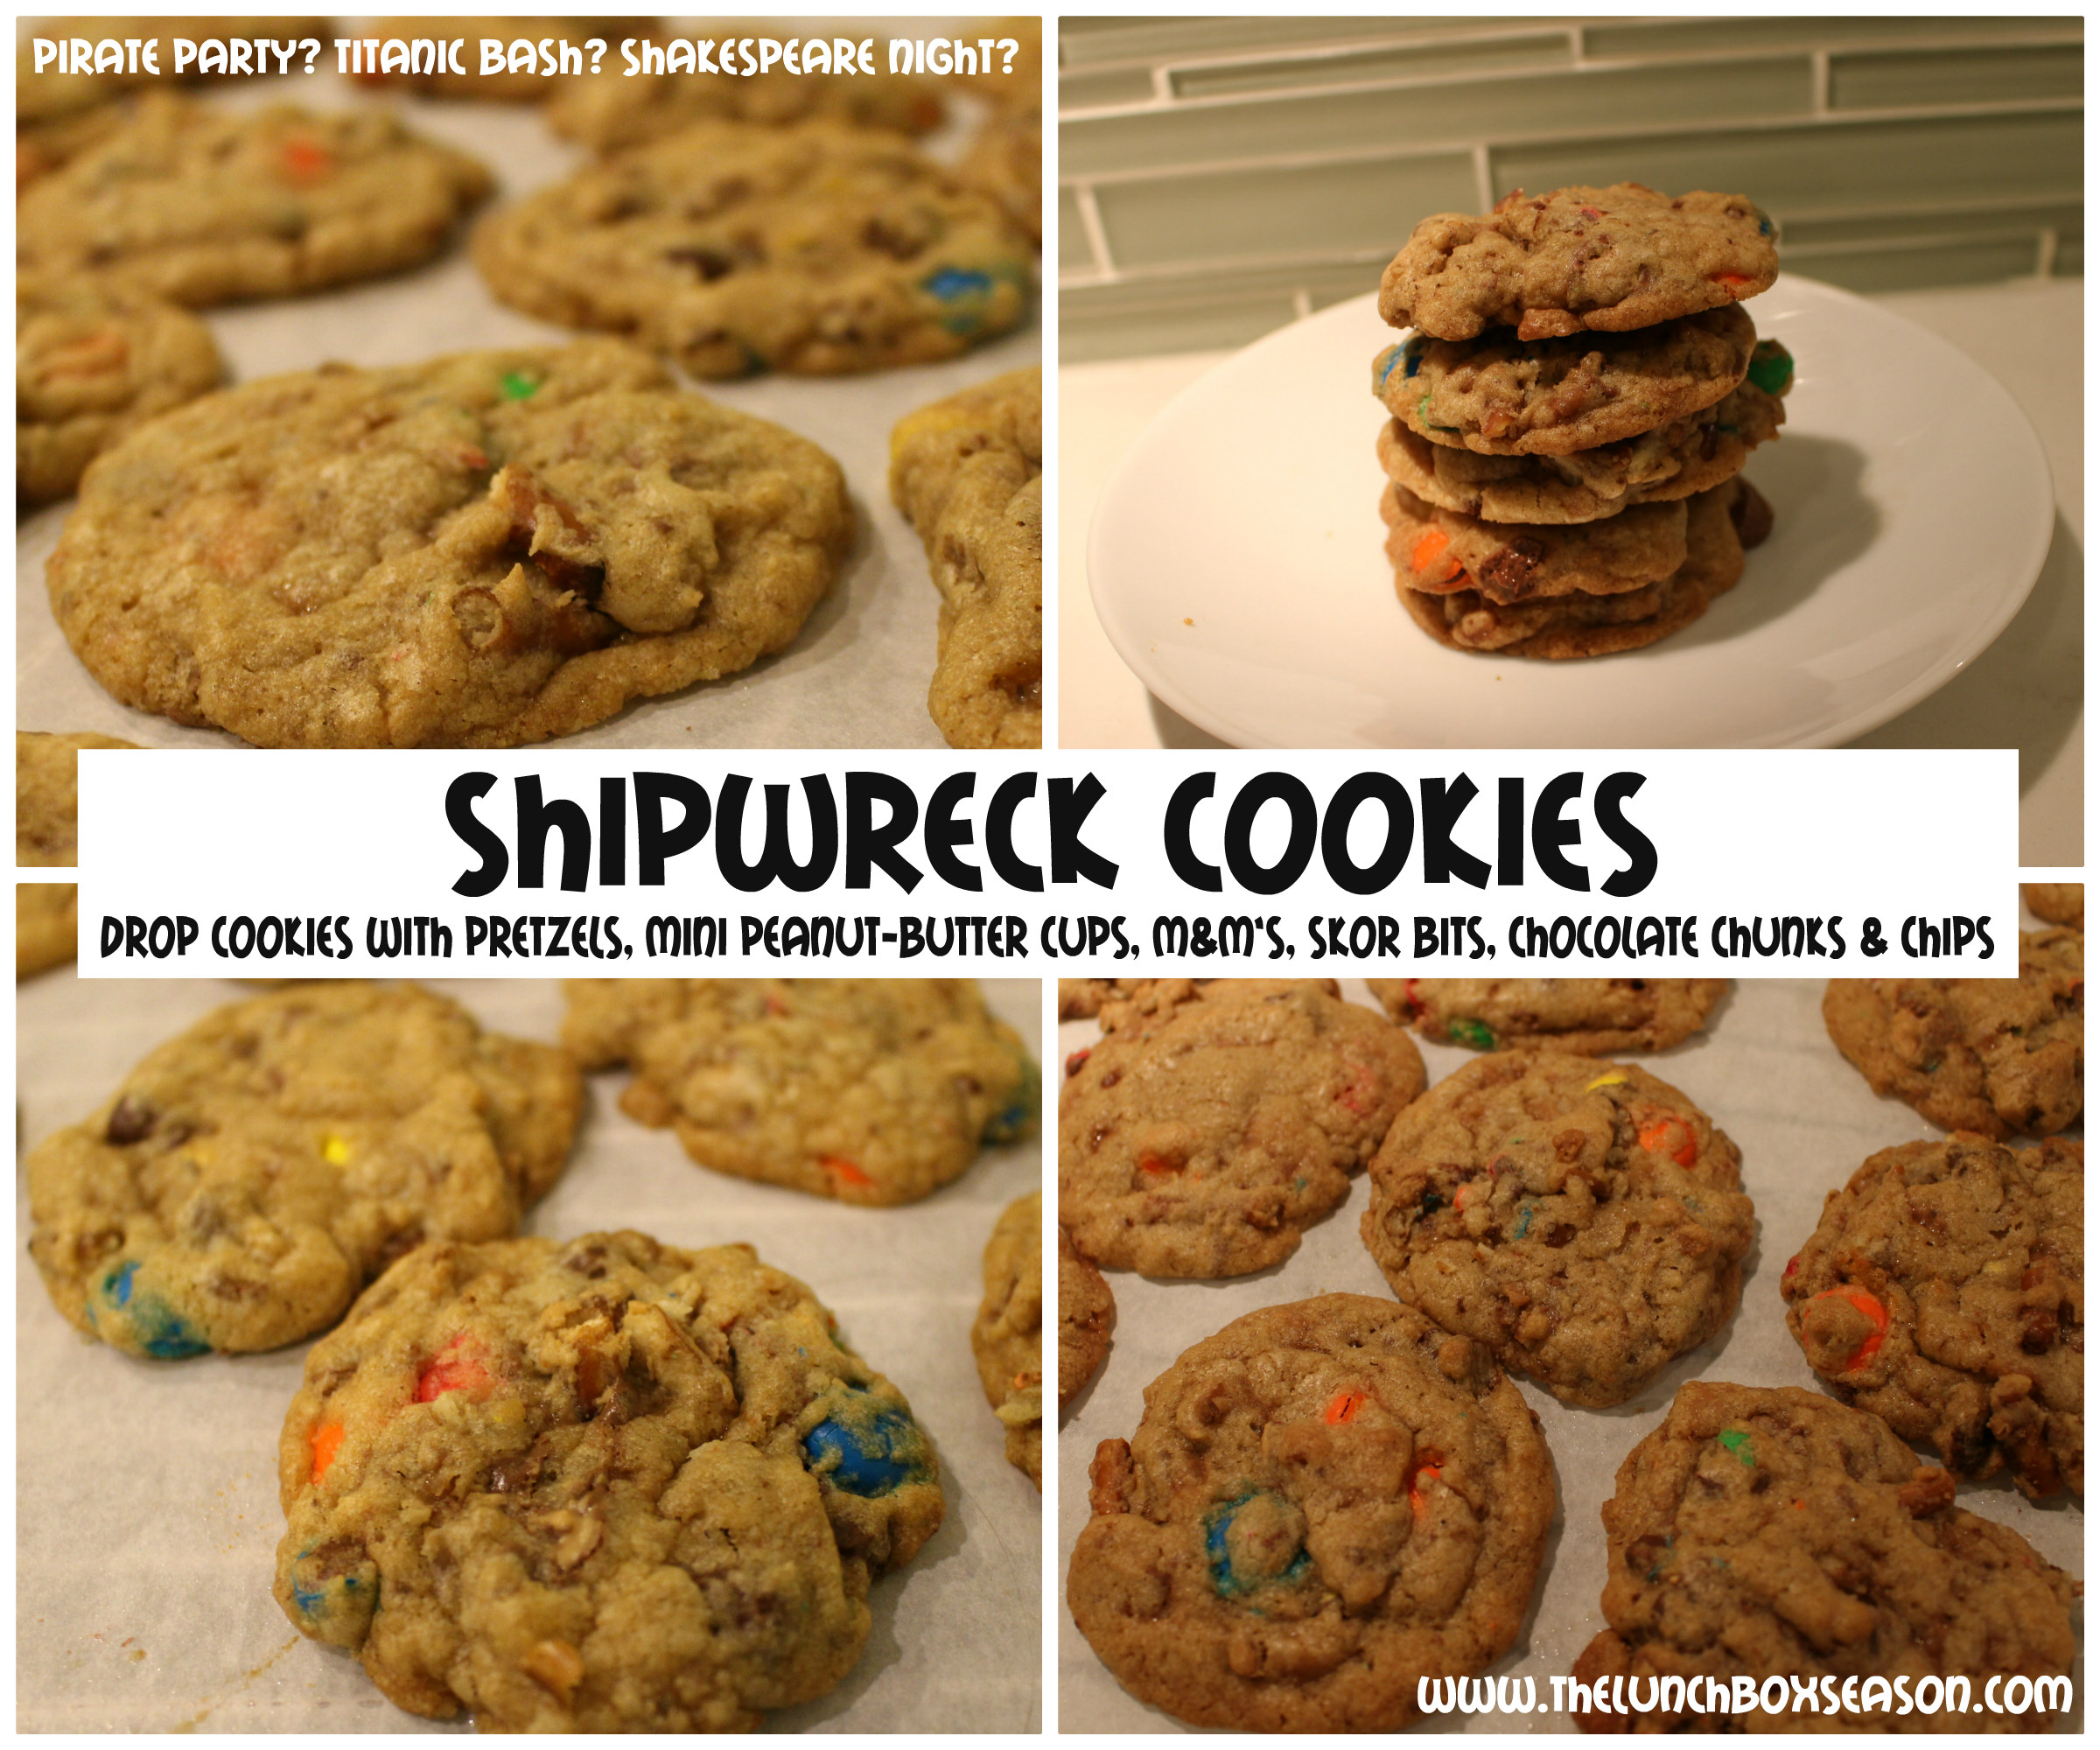 Shipwreck Cookies - Drop Cookies with pretzels, mini peanut-butter-cups, m&m's, skor bits, chocolate chunks & chips - Pirate Party - Titanic bash - Shakespeare Night